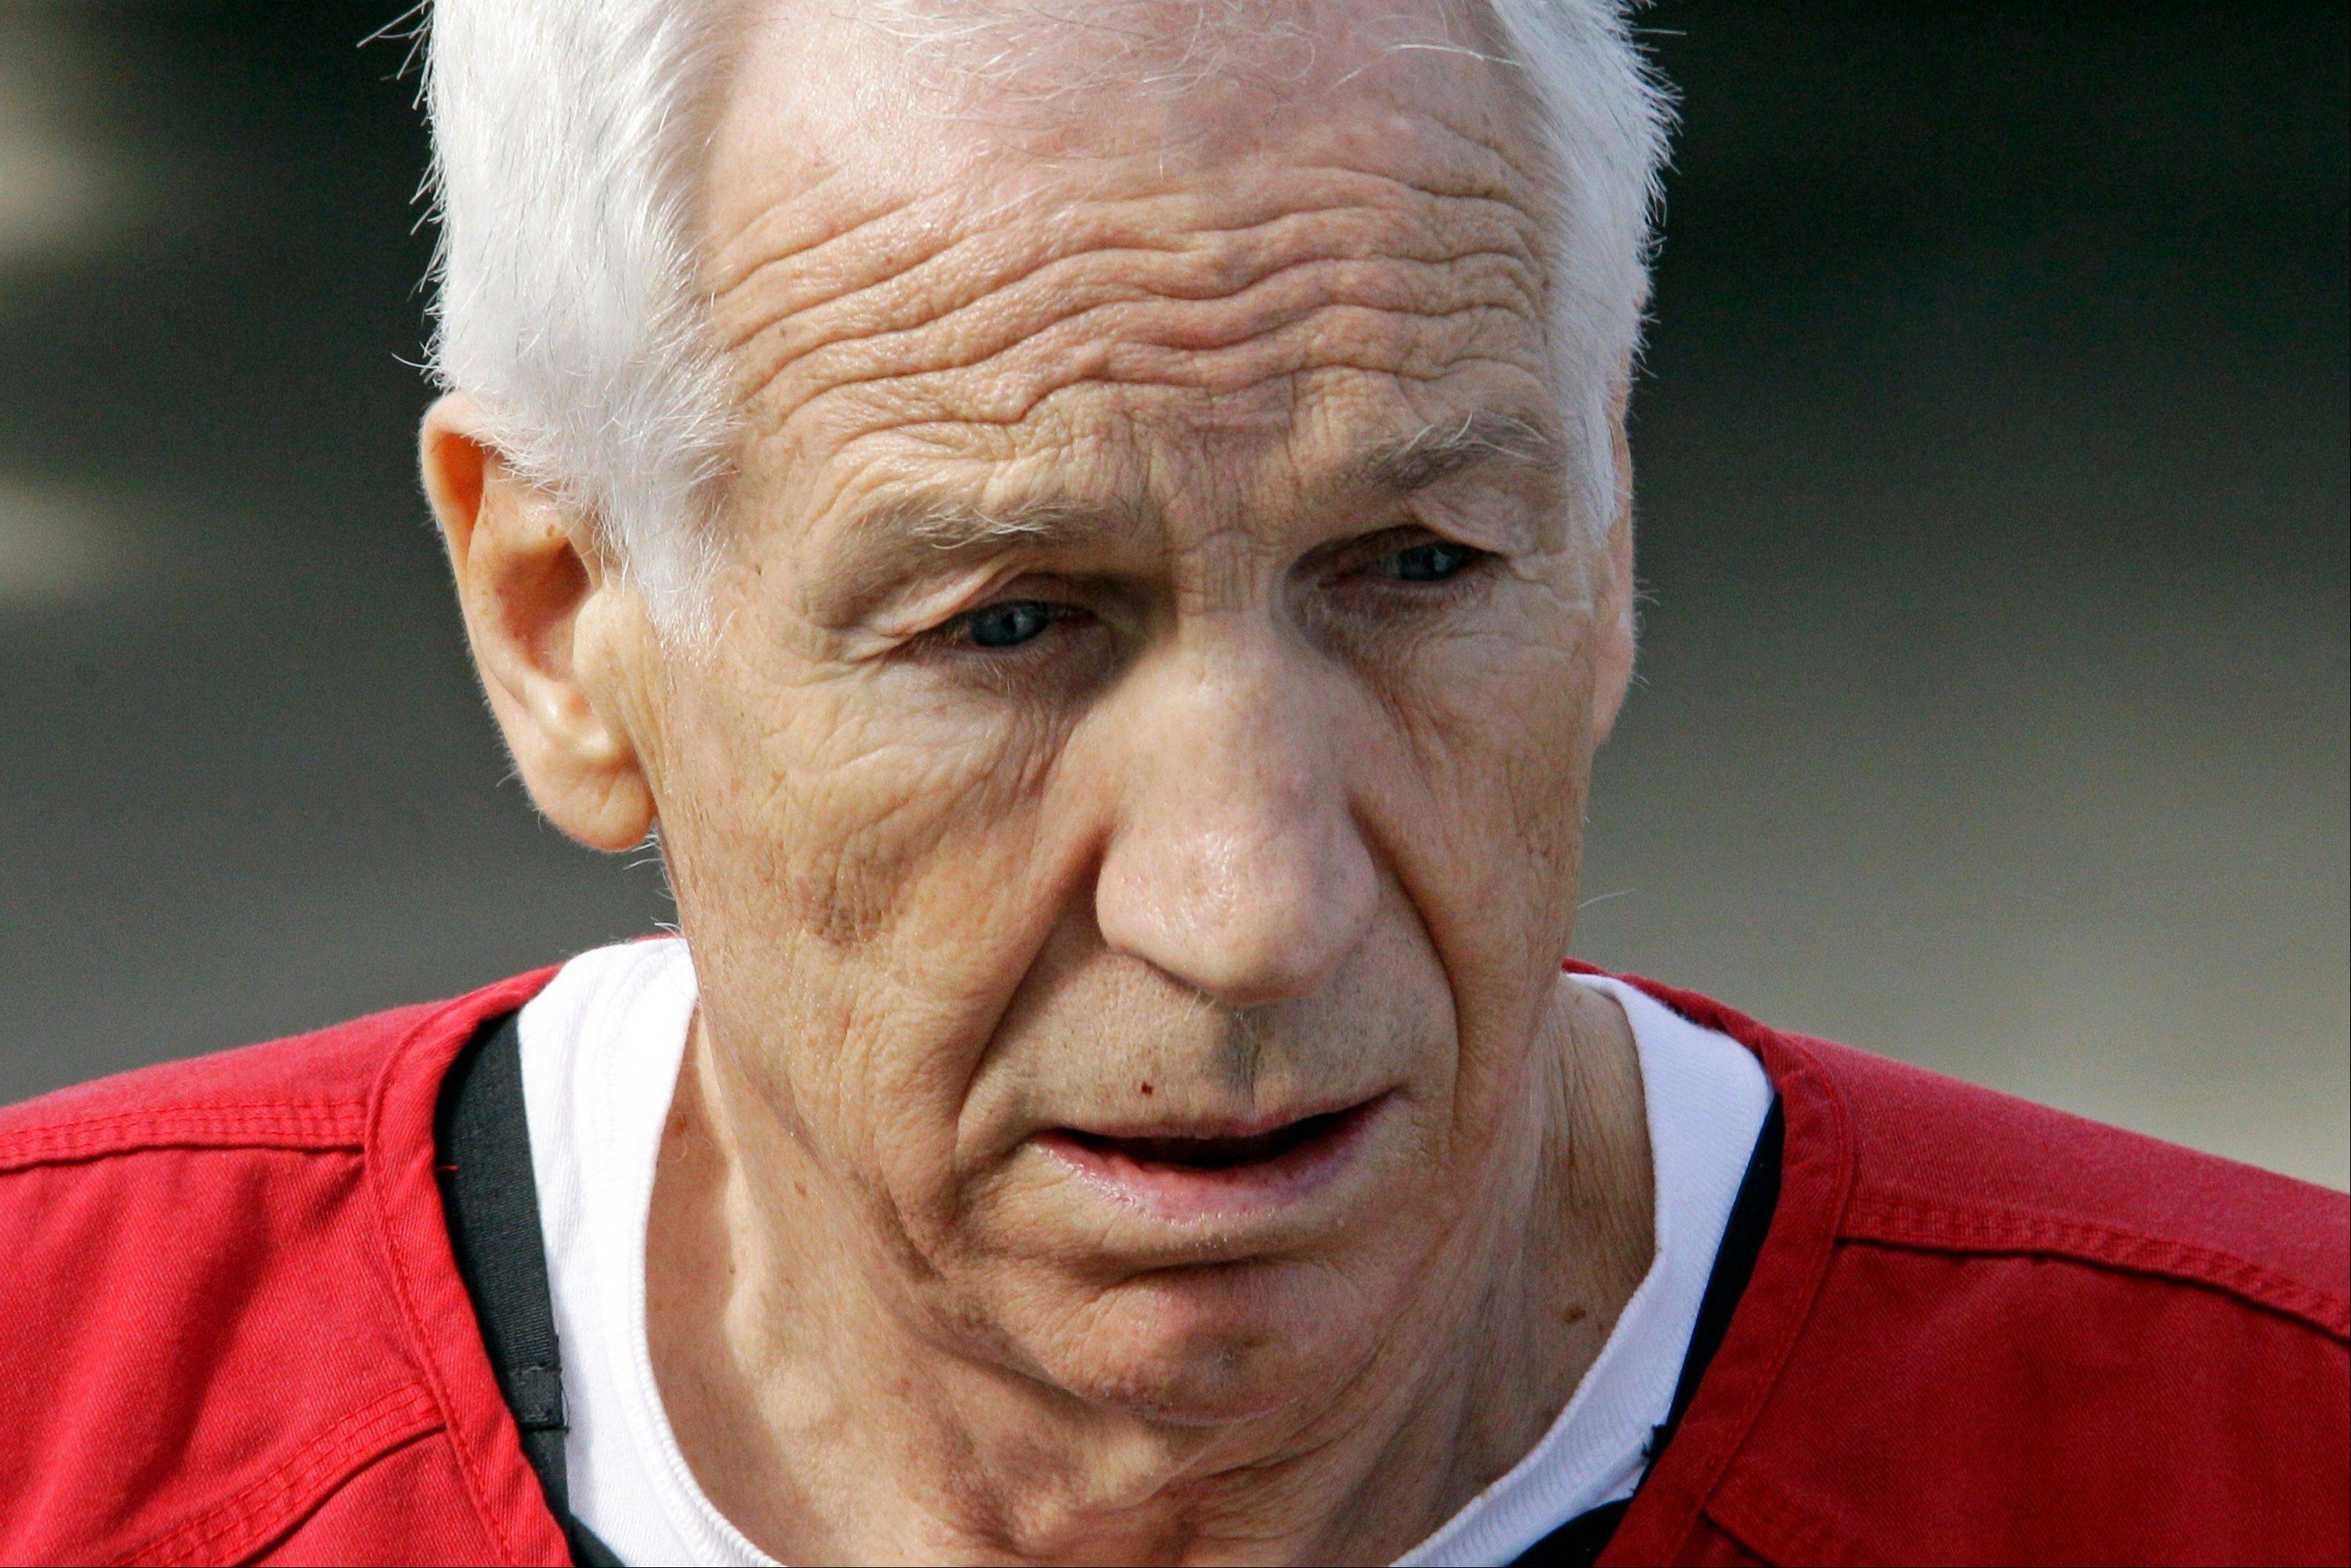 Former Penn State University assistant football coach Jerry Sandusky was sentenced to 30-60 years in prison for sexually abusing 10 boys.